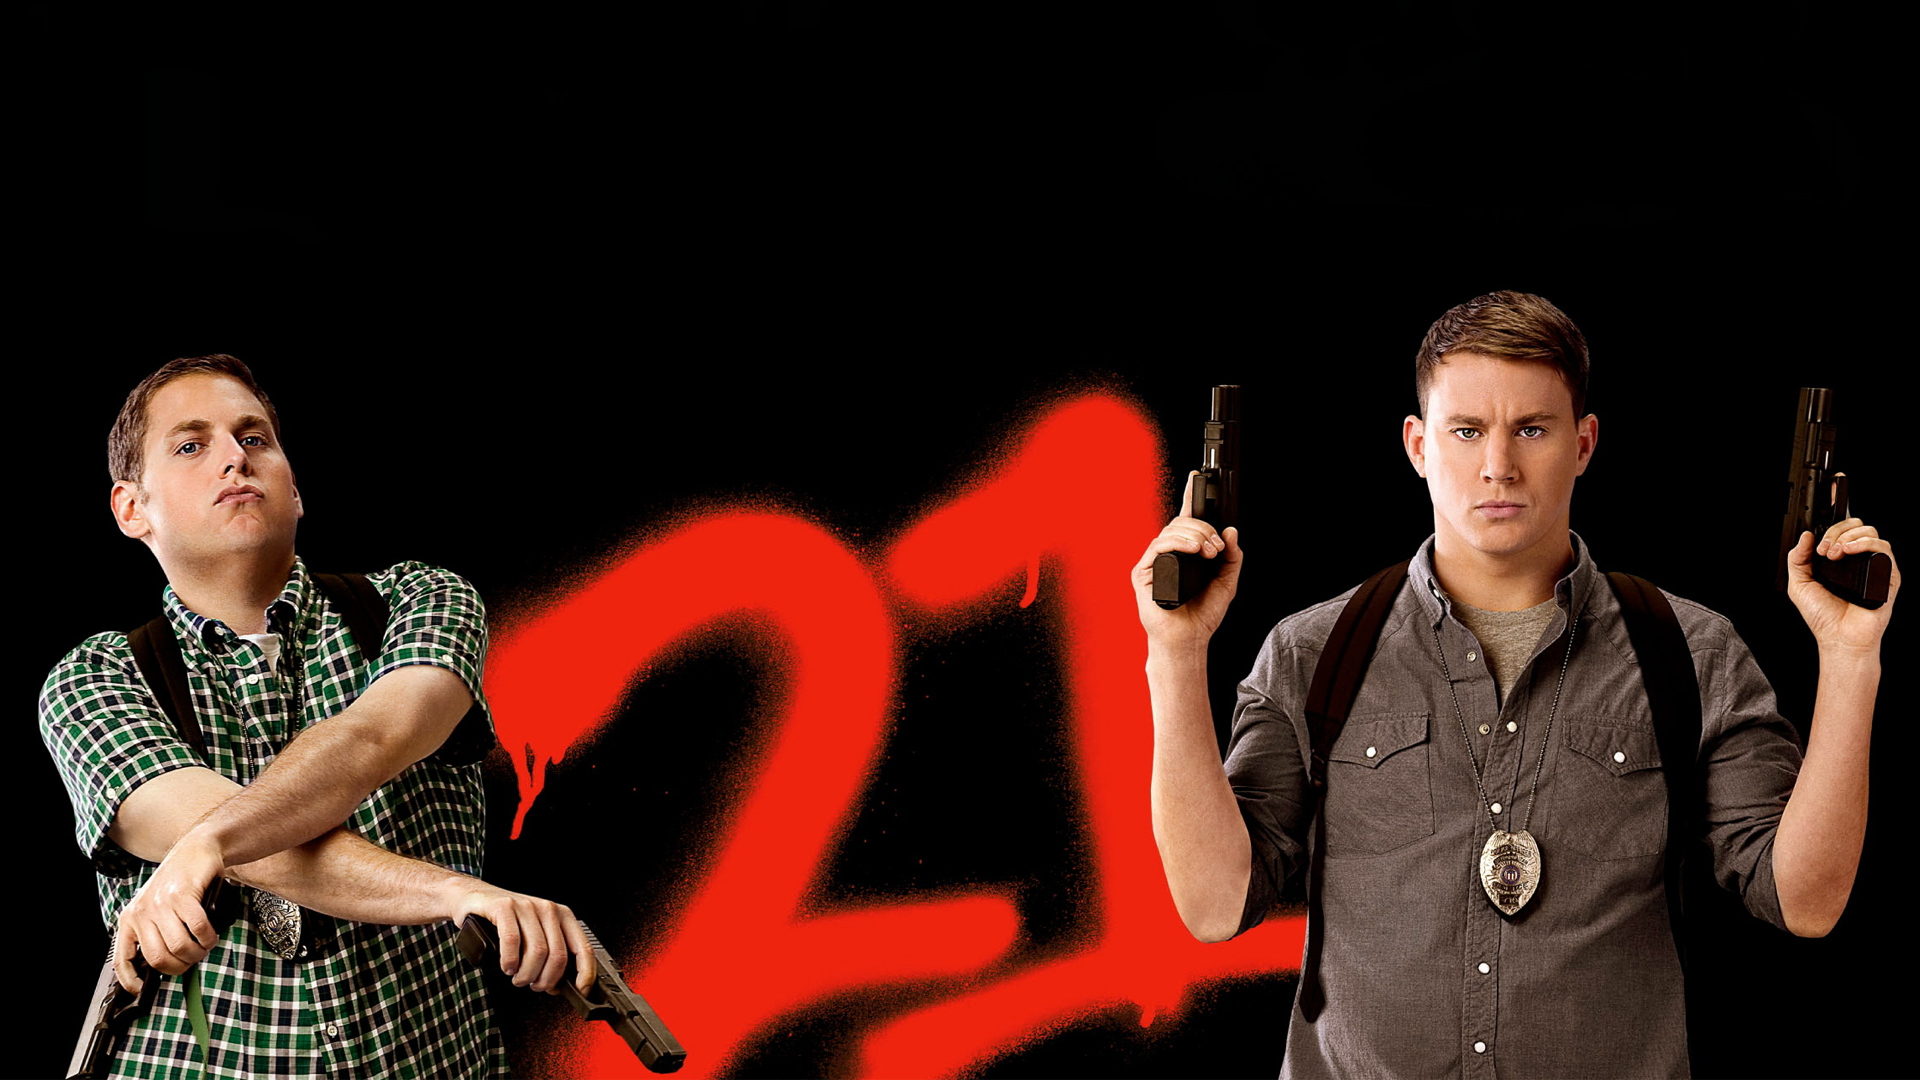 Gif 21 jump street movie funny animated gif on gifer by cerelhala.